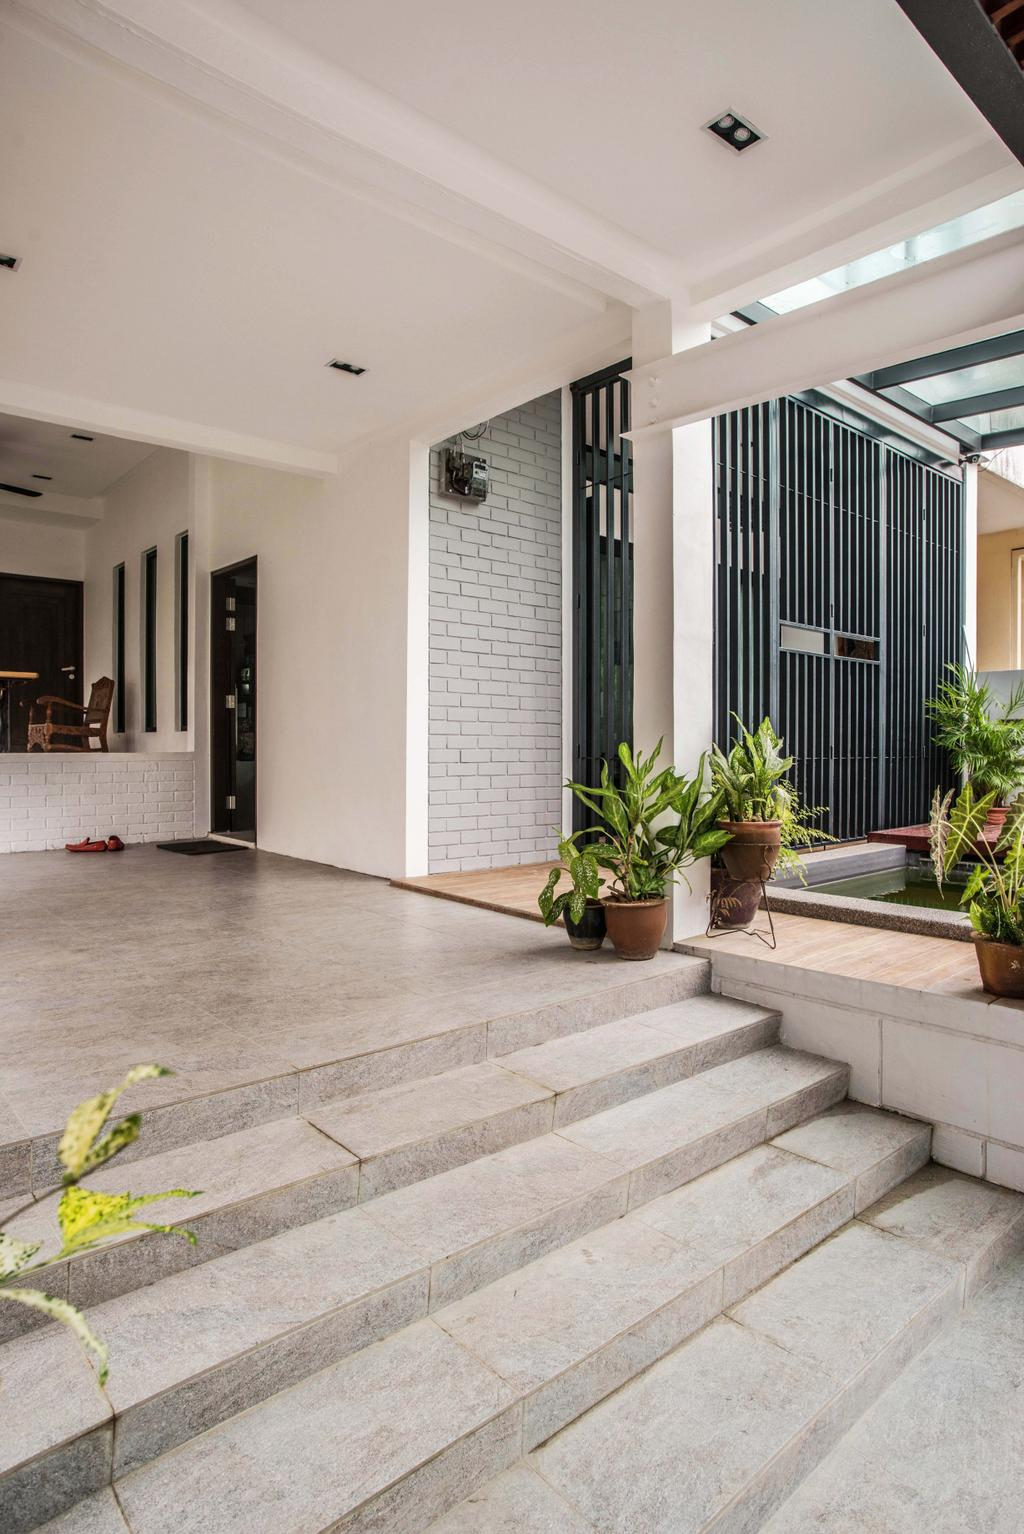 Vintage, Landed, Garden, Tasek House, Architect, Code Red Studio, Home Entrance, Entrance, Staircase, Stairs, Home Exterior, Exterior, Flora, Jar, Plant, Potted Plant, Pottery, Vase